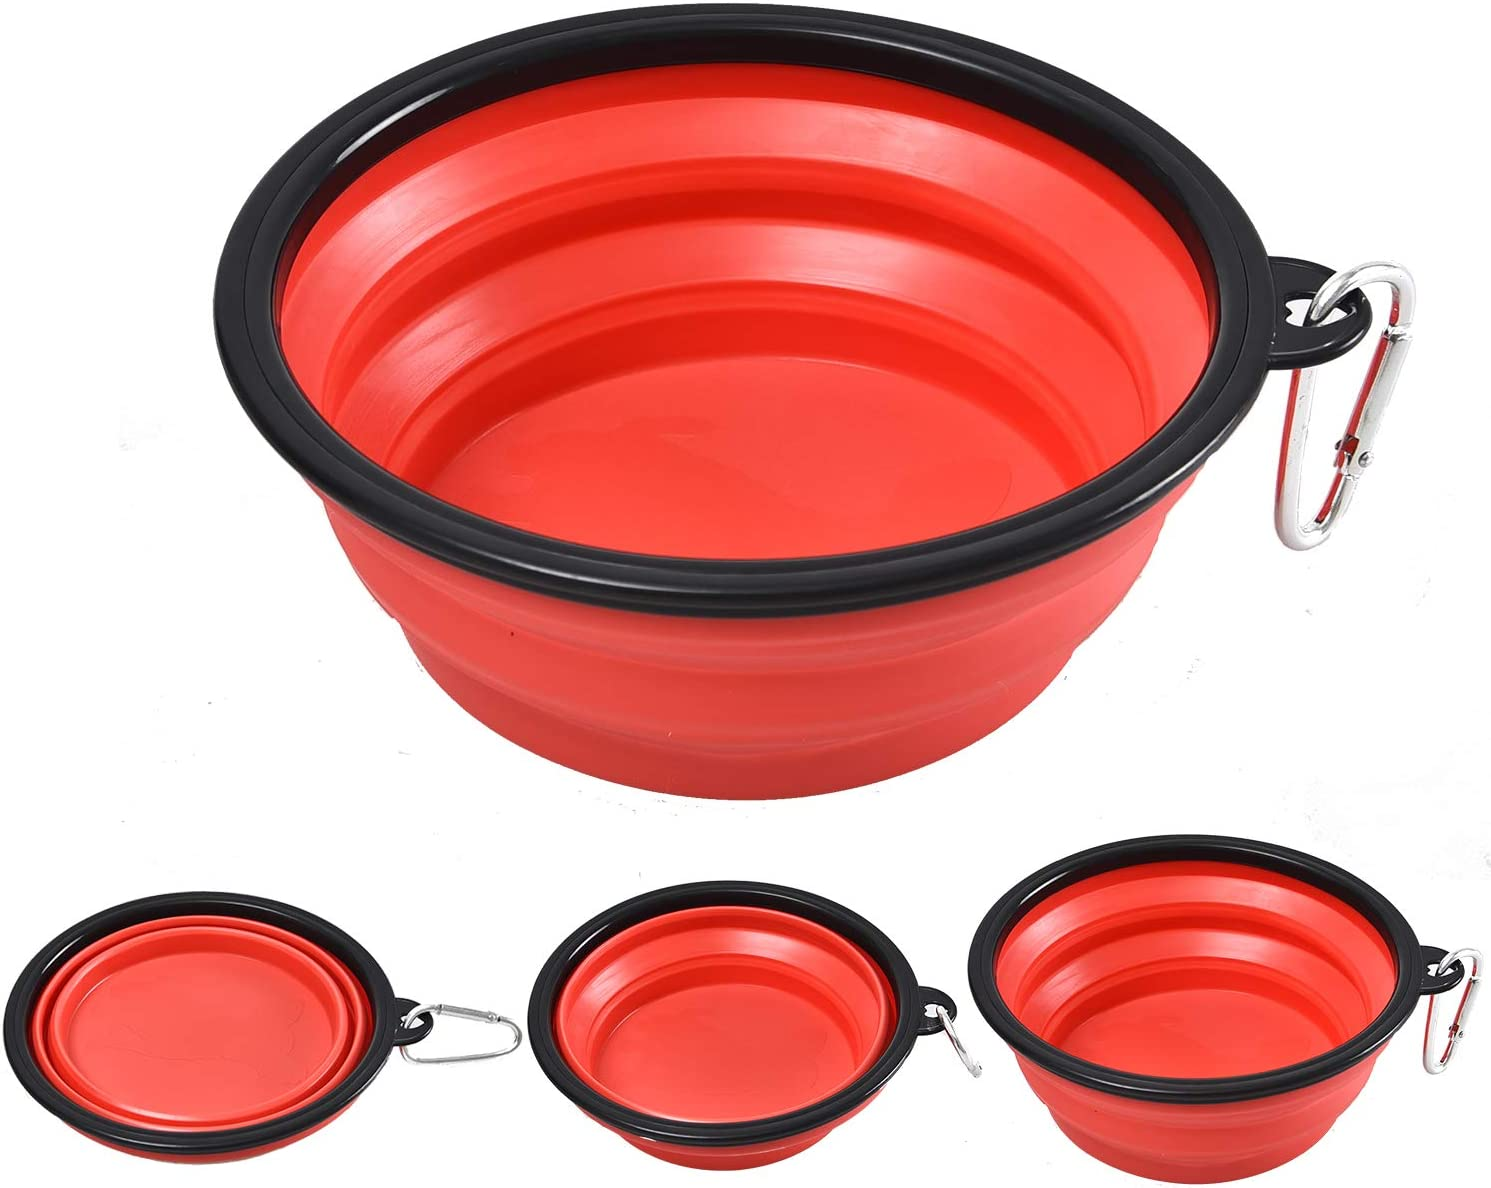 BUDDING Collapsible Dog Bowl for Travel – 34 oz (1000 ml) Water & Food Feeding Foldable Bowl – Best for Big, Medium & Small Size Dogs – Silicone Dog Dishes Food Bowl with Carabiner Clip